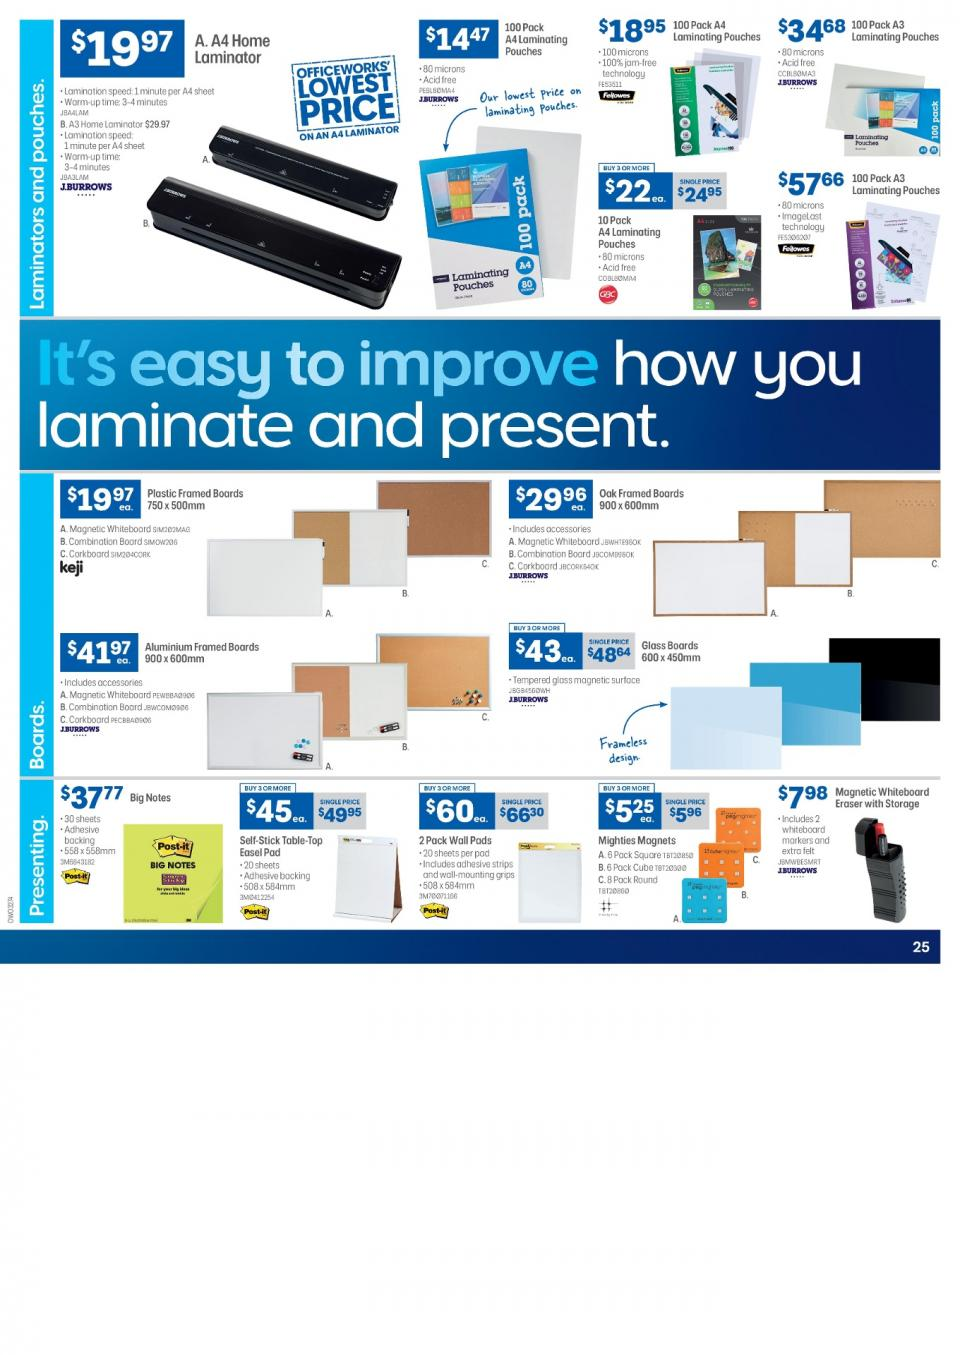 Officeworks Catalogue Jun 2019 Page 23 - Www imagez co